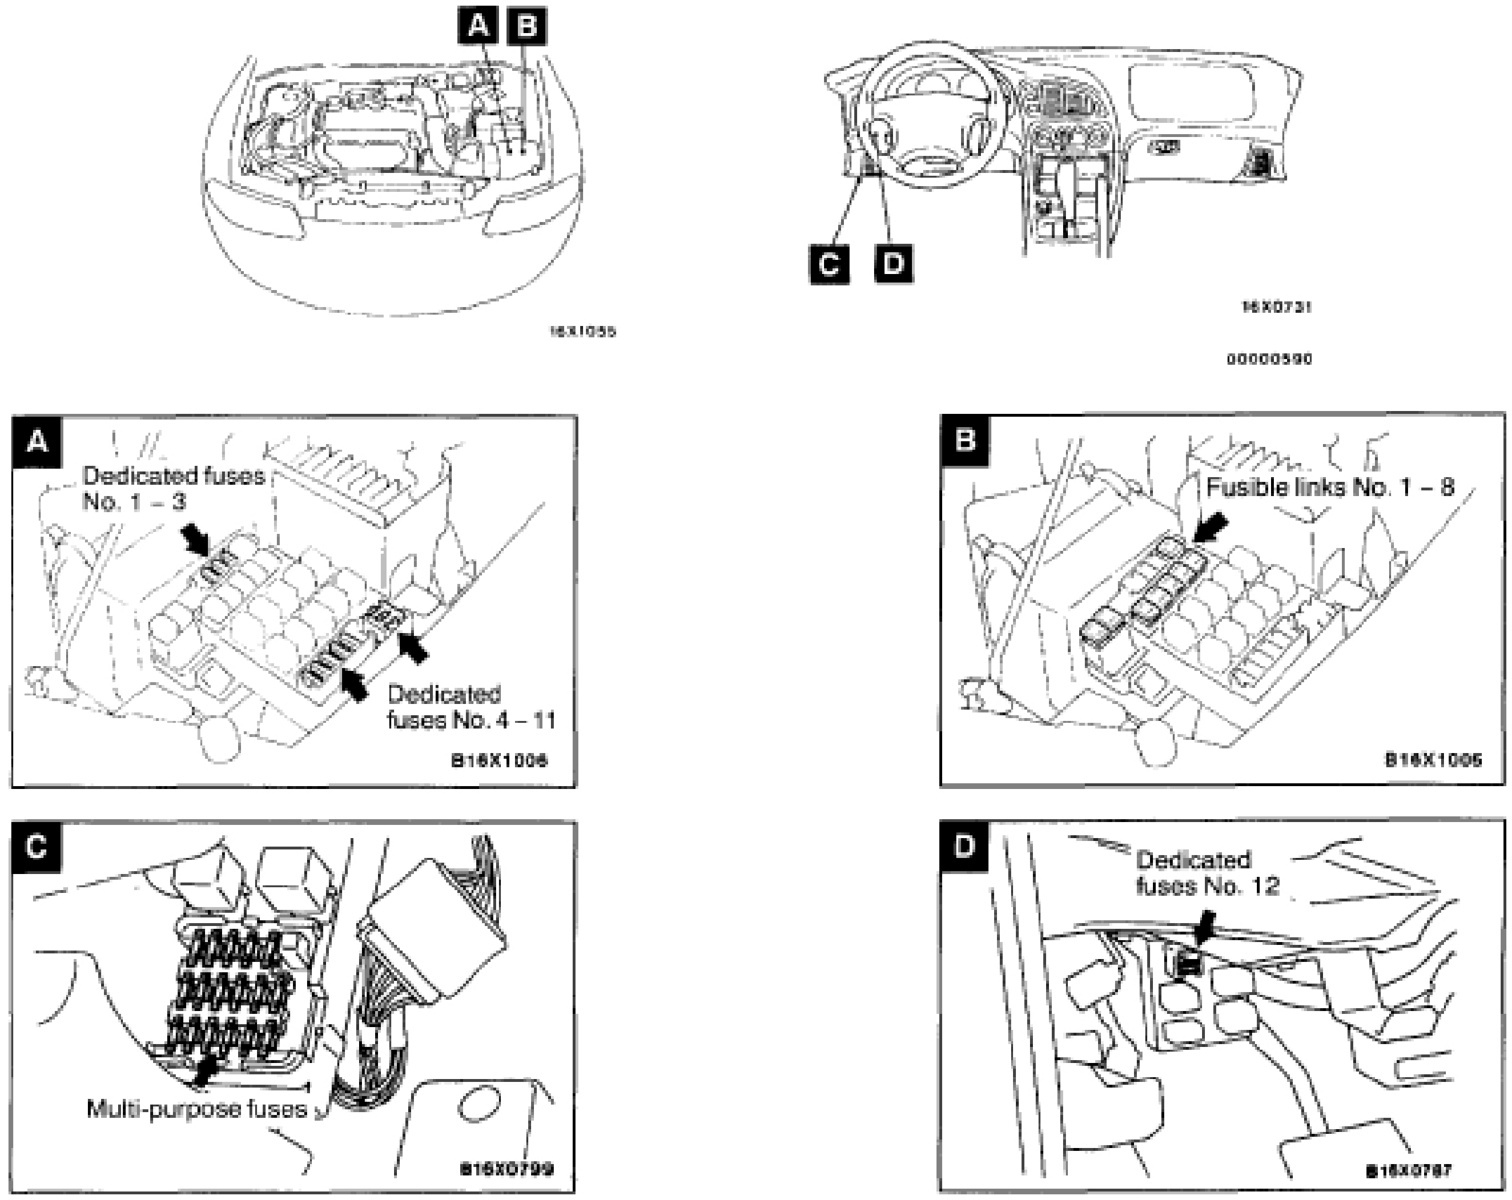 Fuse Box Chrysler Sebring 2008 Detailed Schematics Diagram In Line Questions Where Are Fuses Located On Chysler 2003